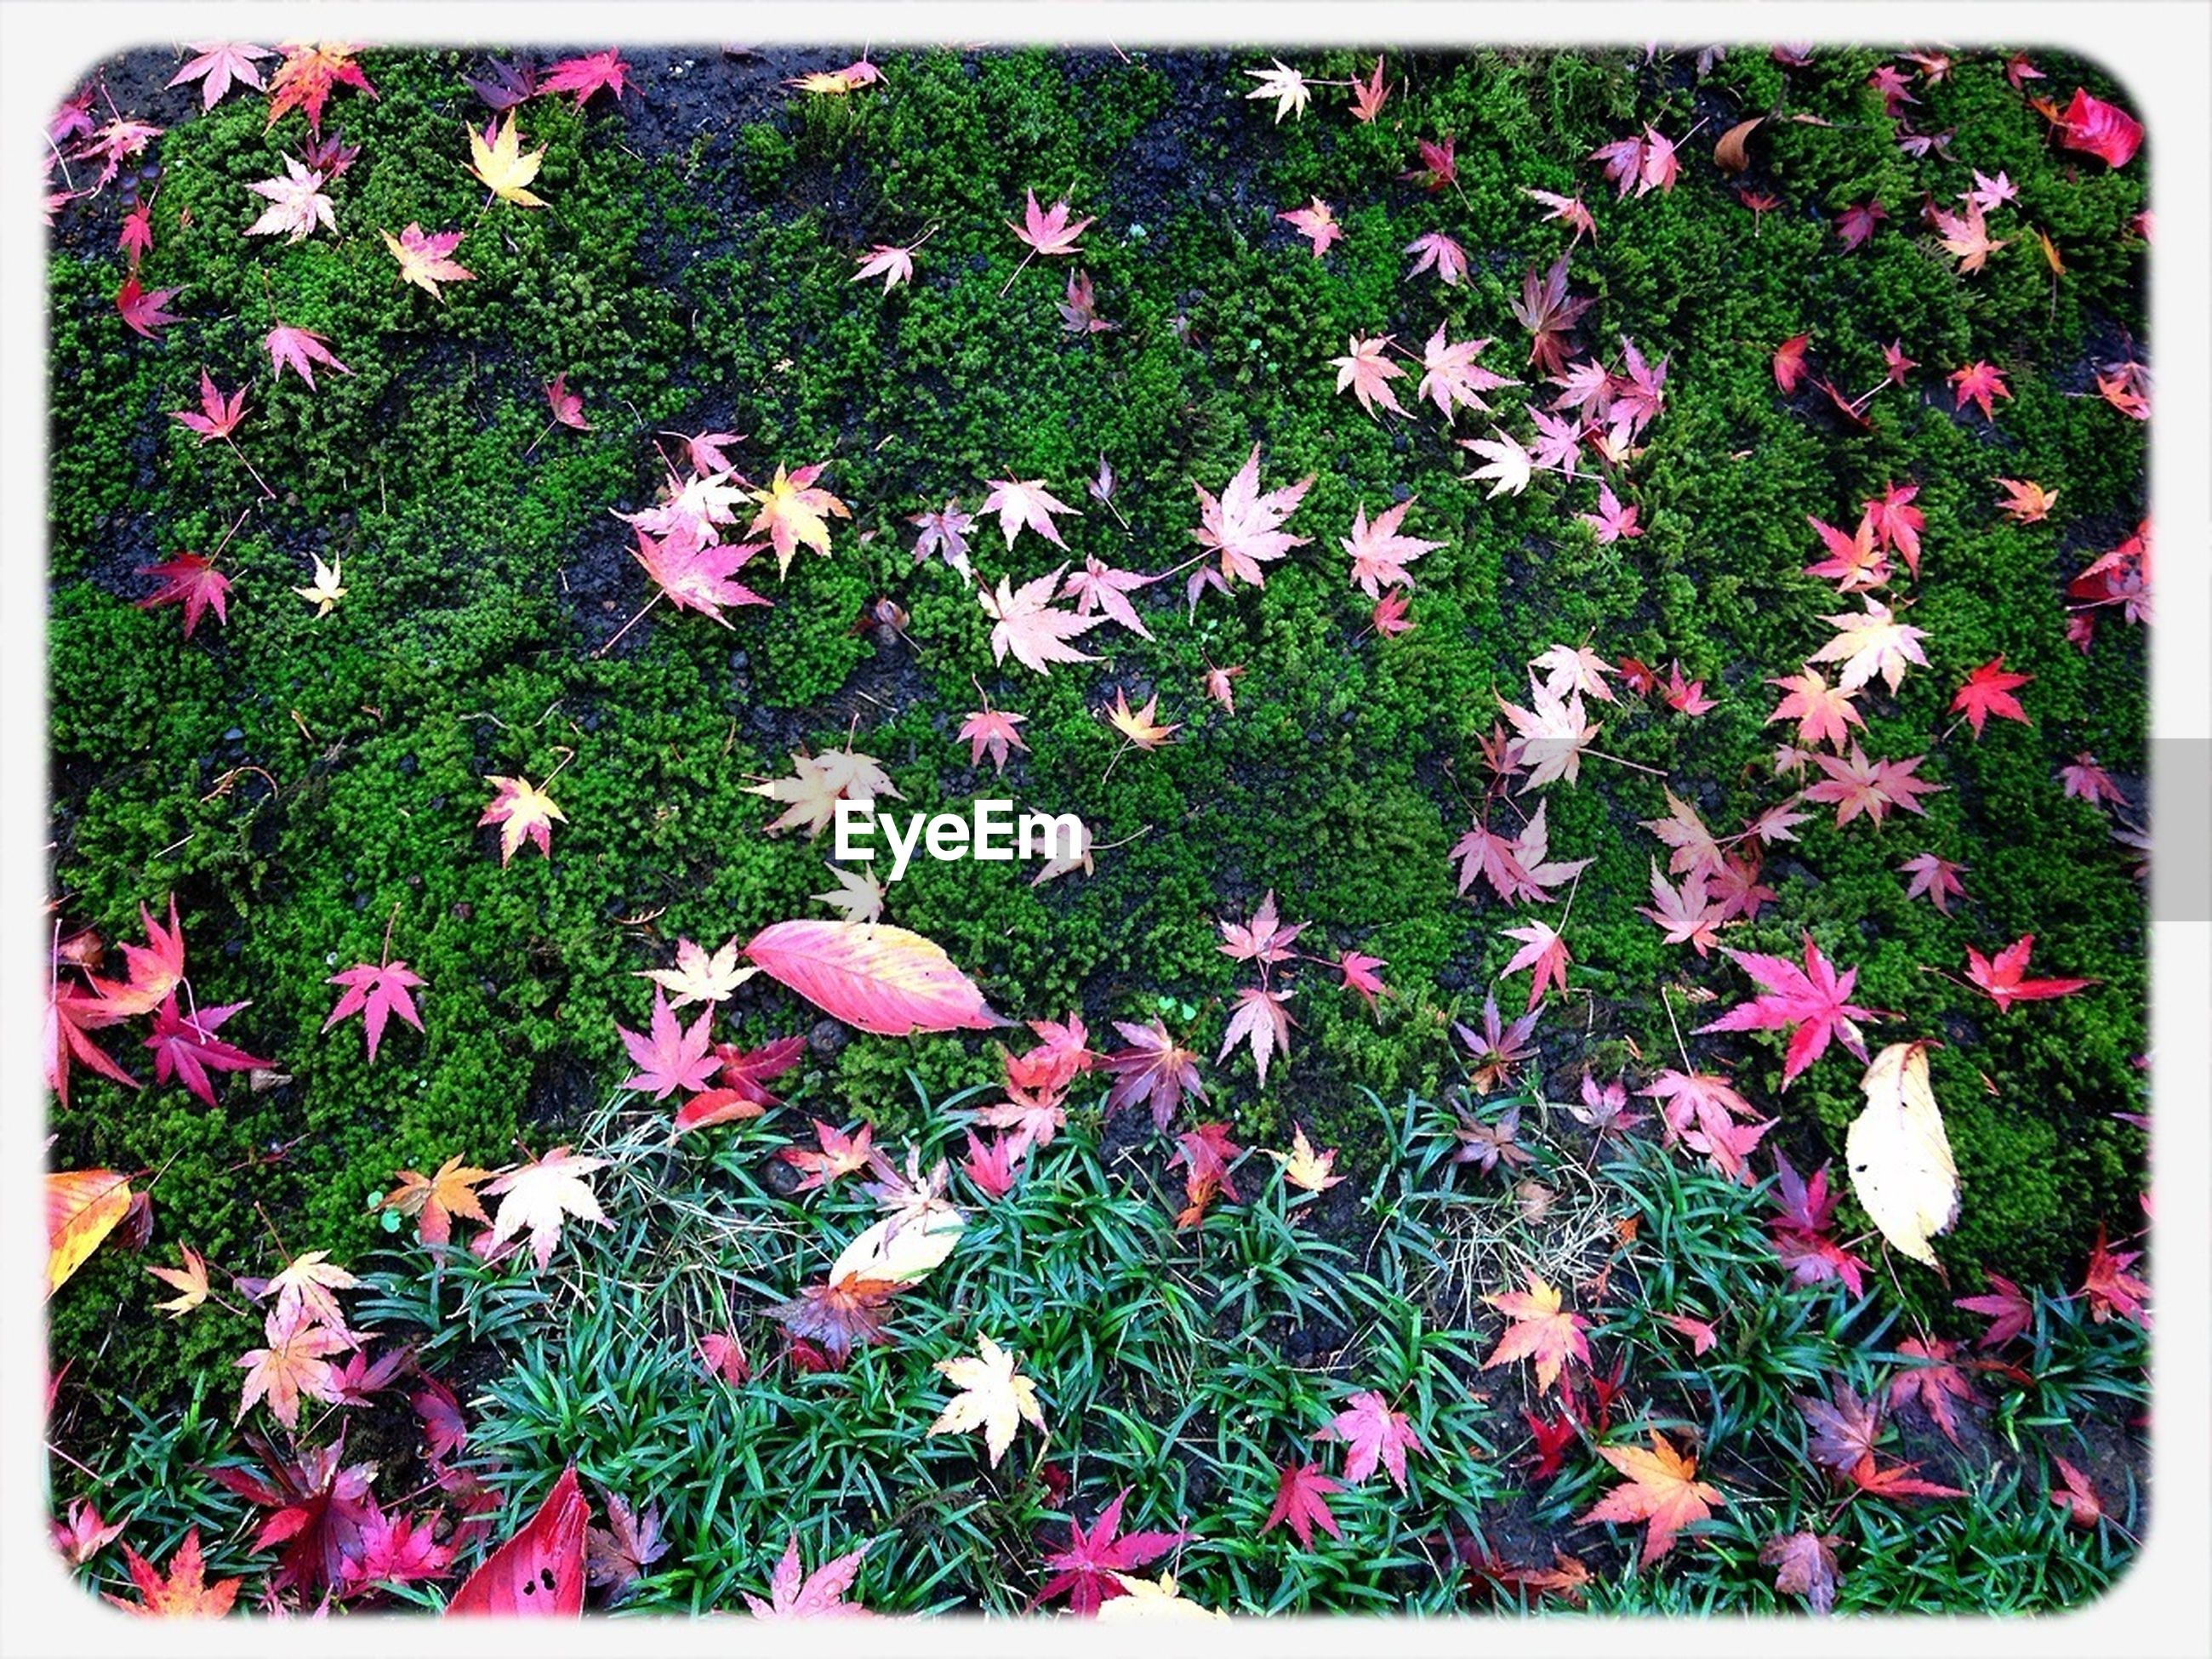 Autumnal leaves on grass